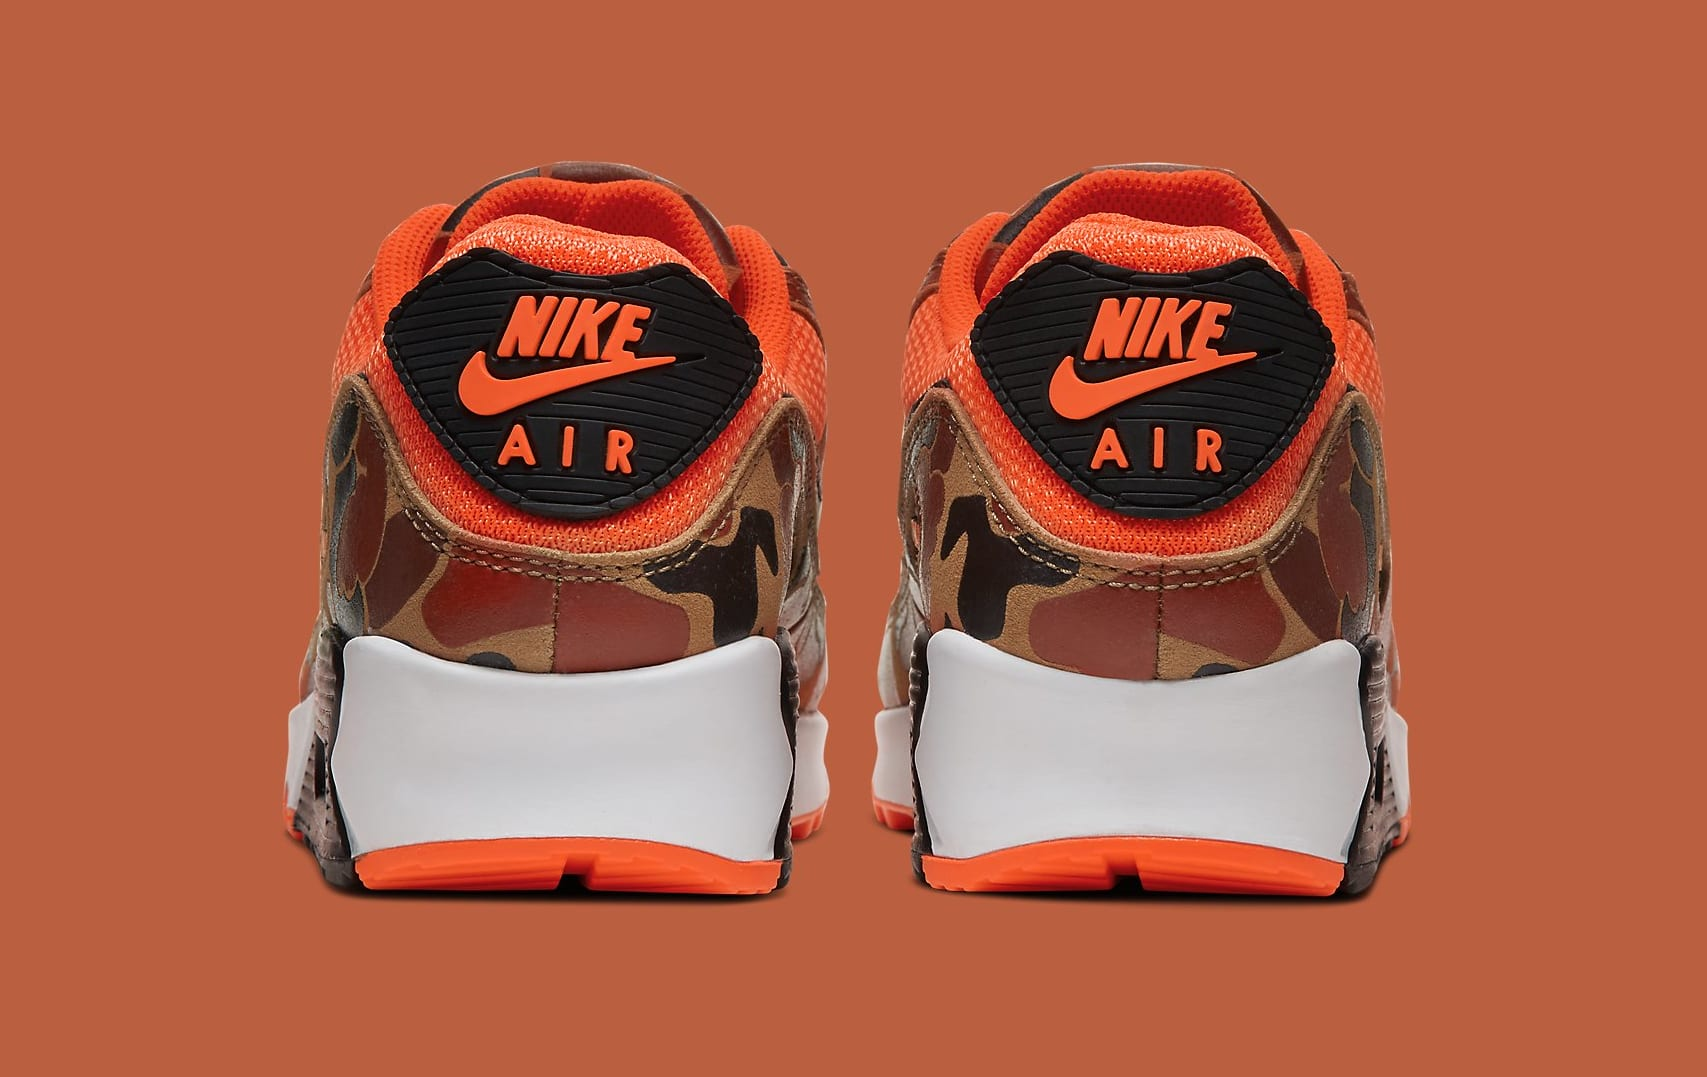 Nike Air Max 90 'Orange Camo' CW4039-800 Heel